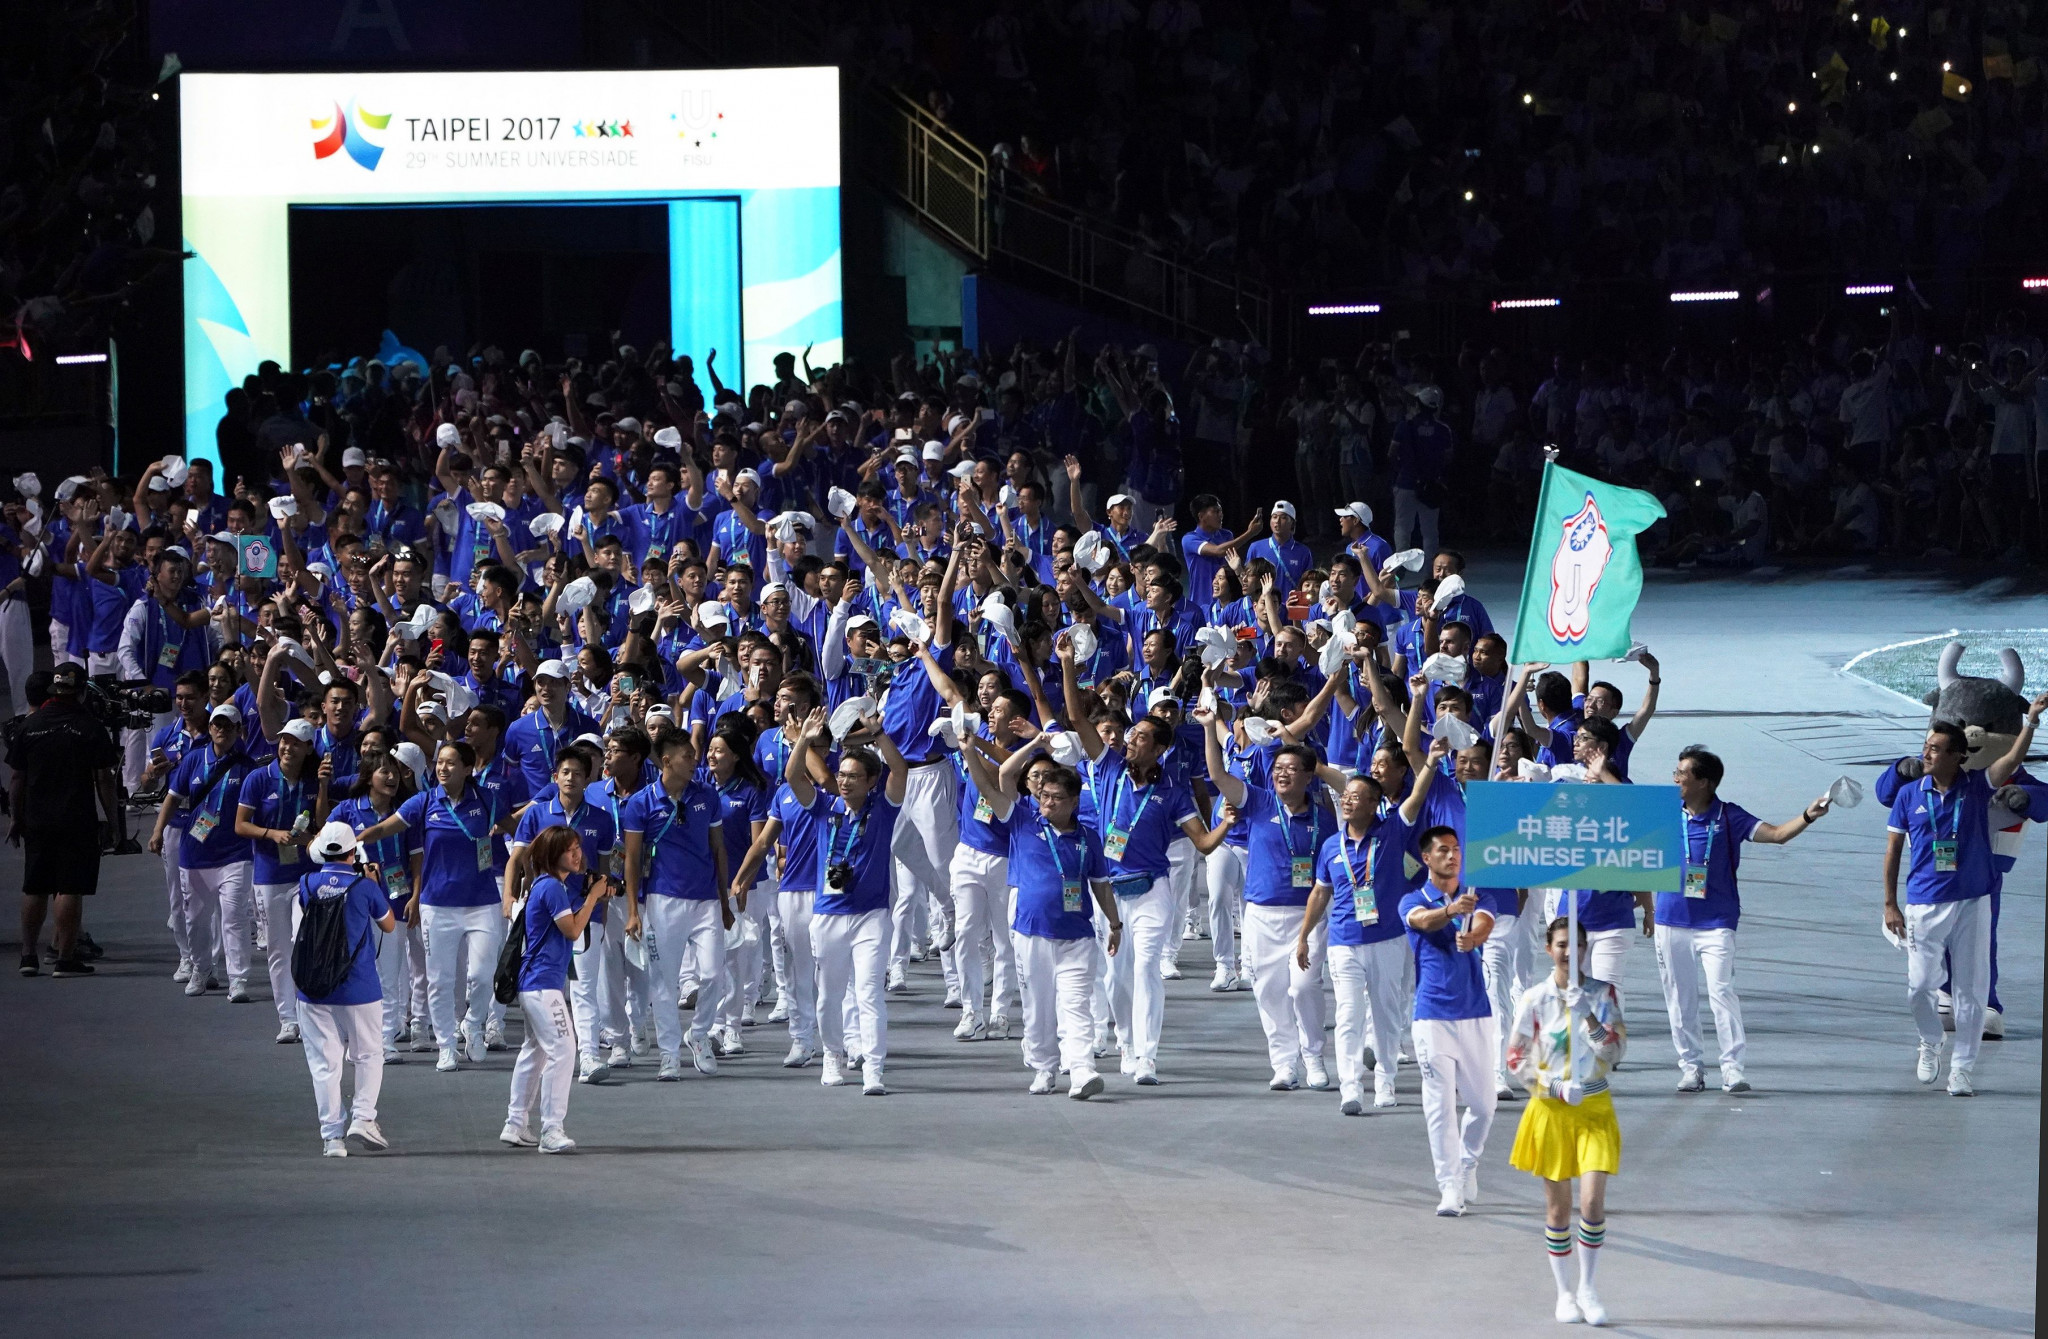 Three suspects charged over Taipei 2017 Opening Ceremony disturbances